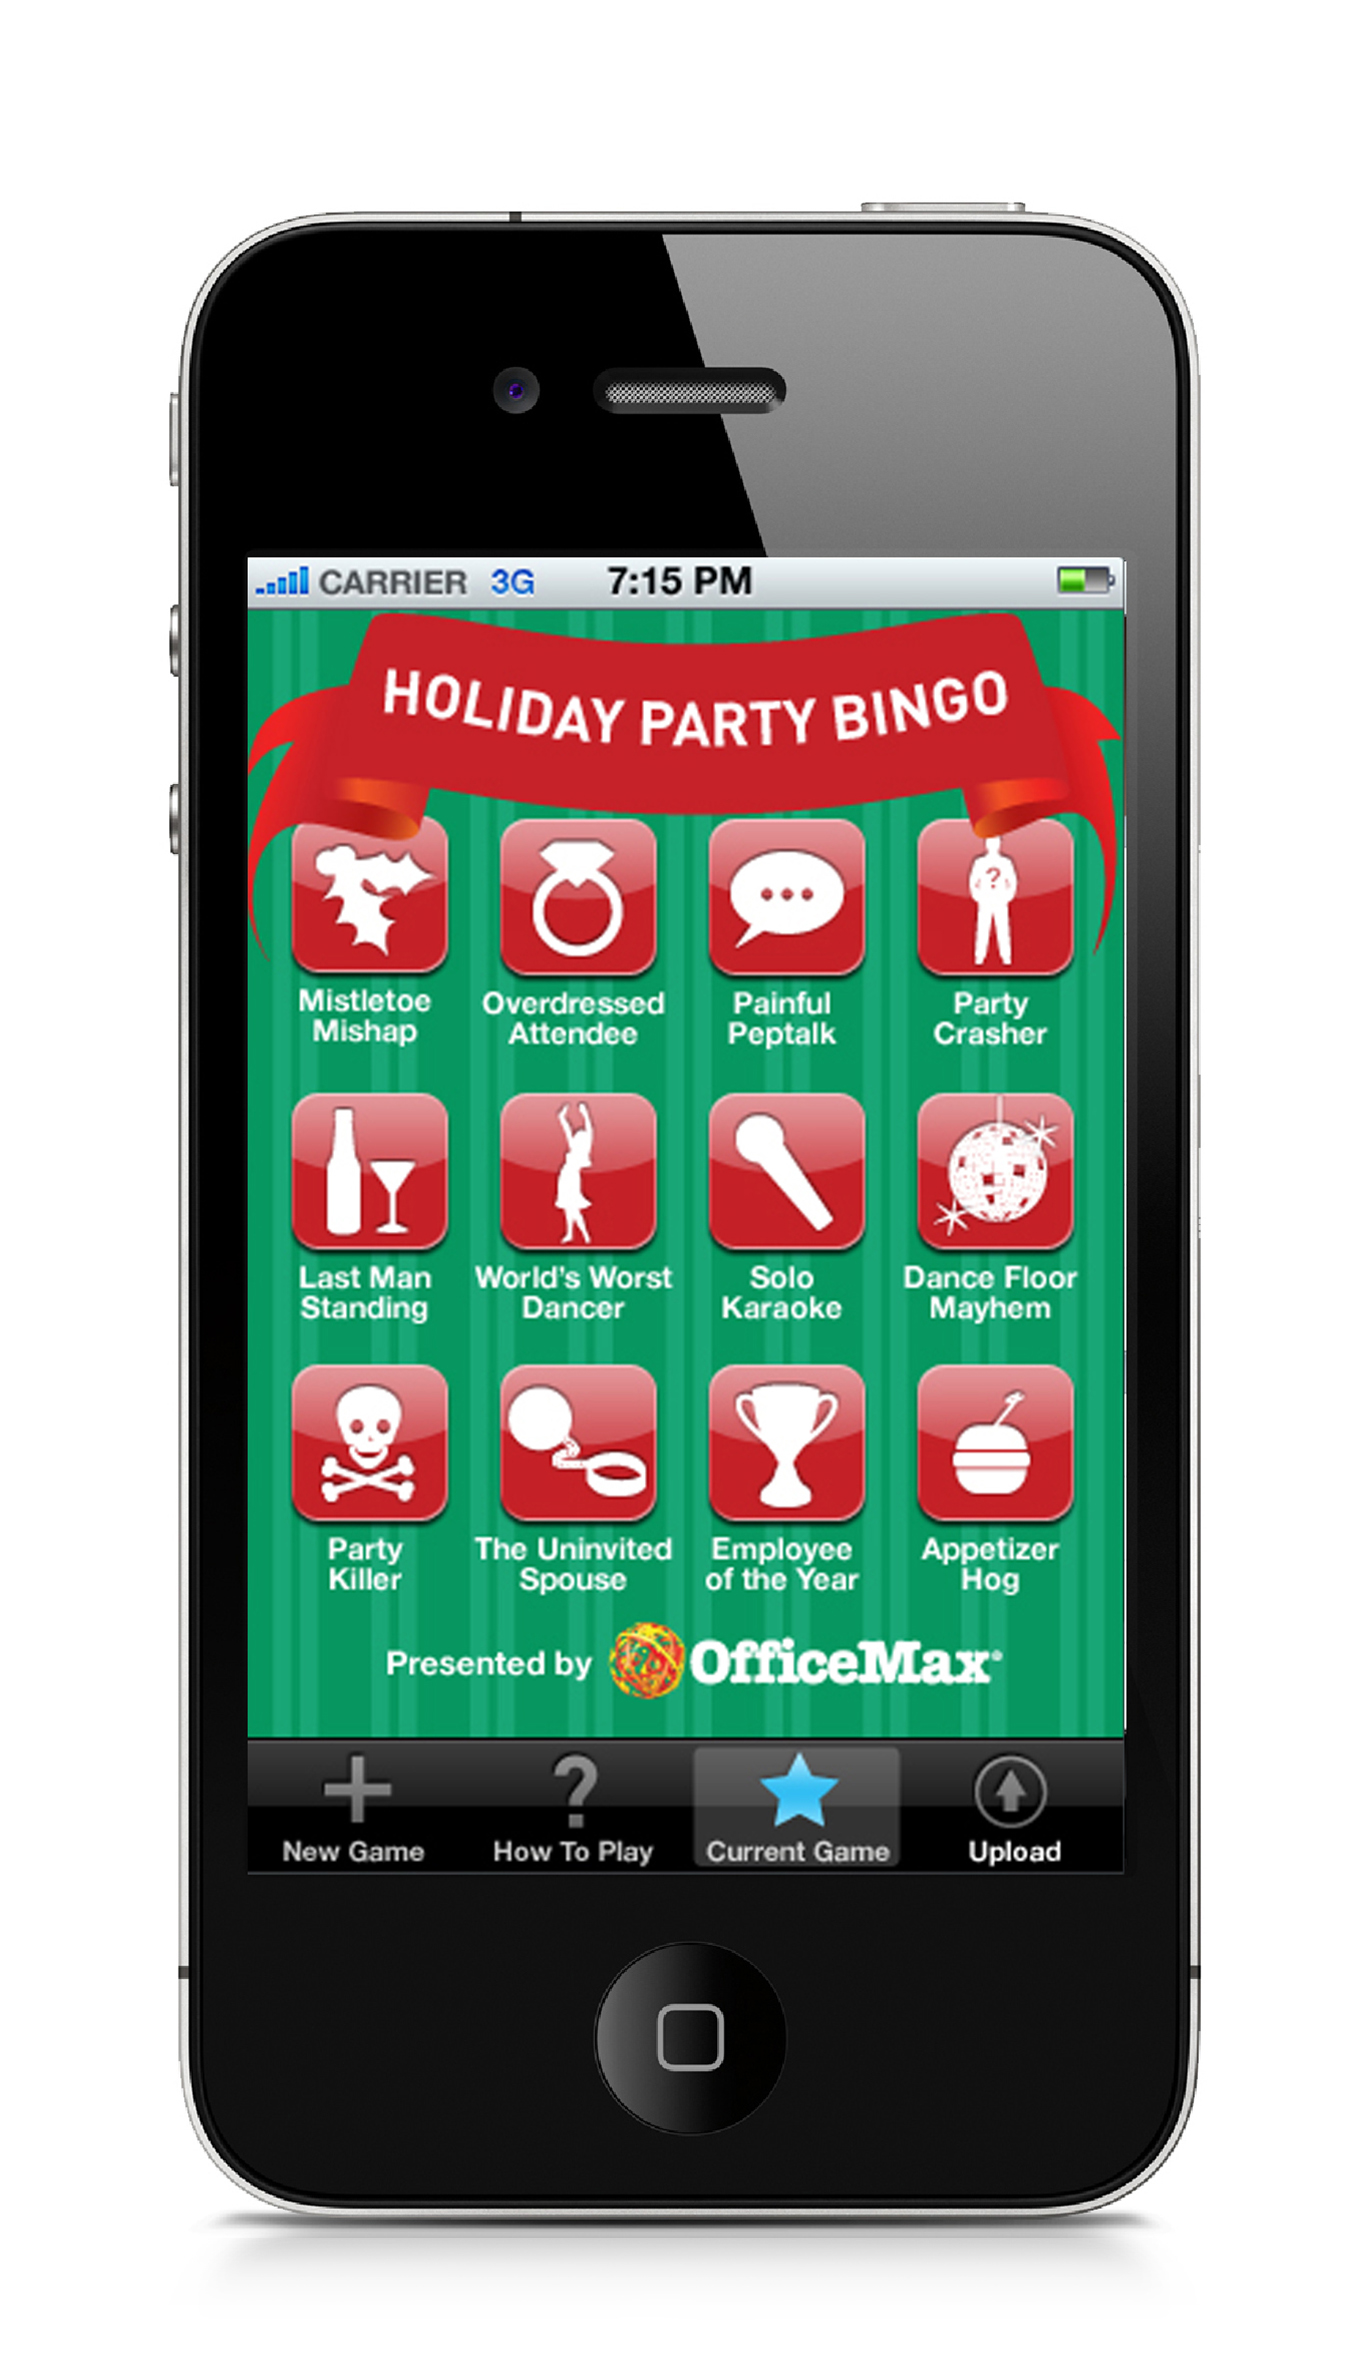 HolidayPartyBingo_single